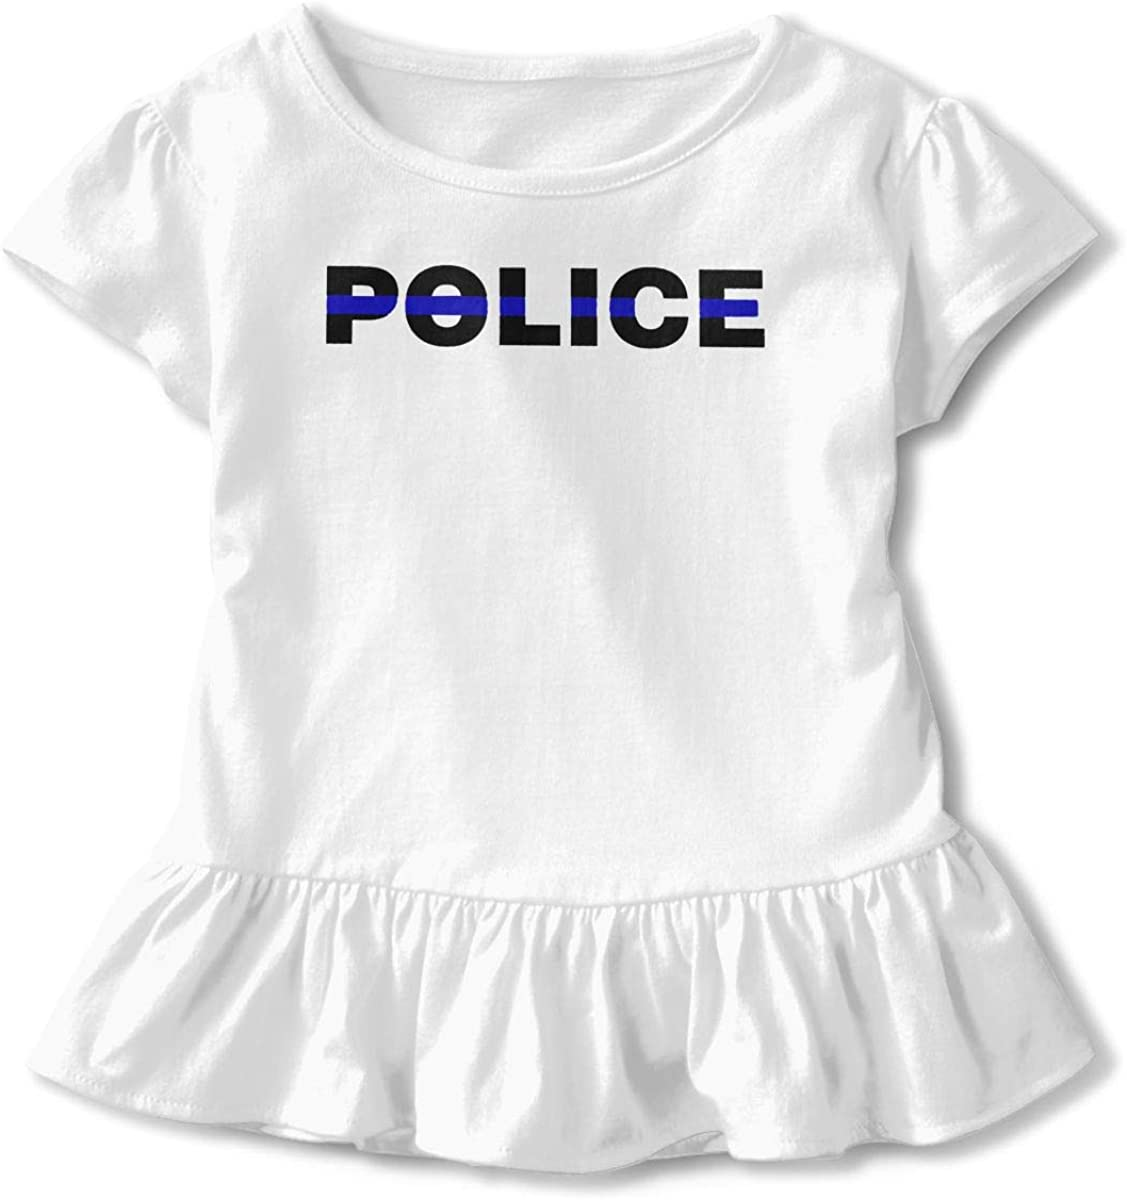 SC/_VD08 Blue Thin Line Police Baby Girls Short-Sleeved Tshirts Sportwear